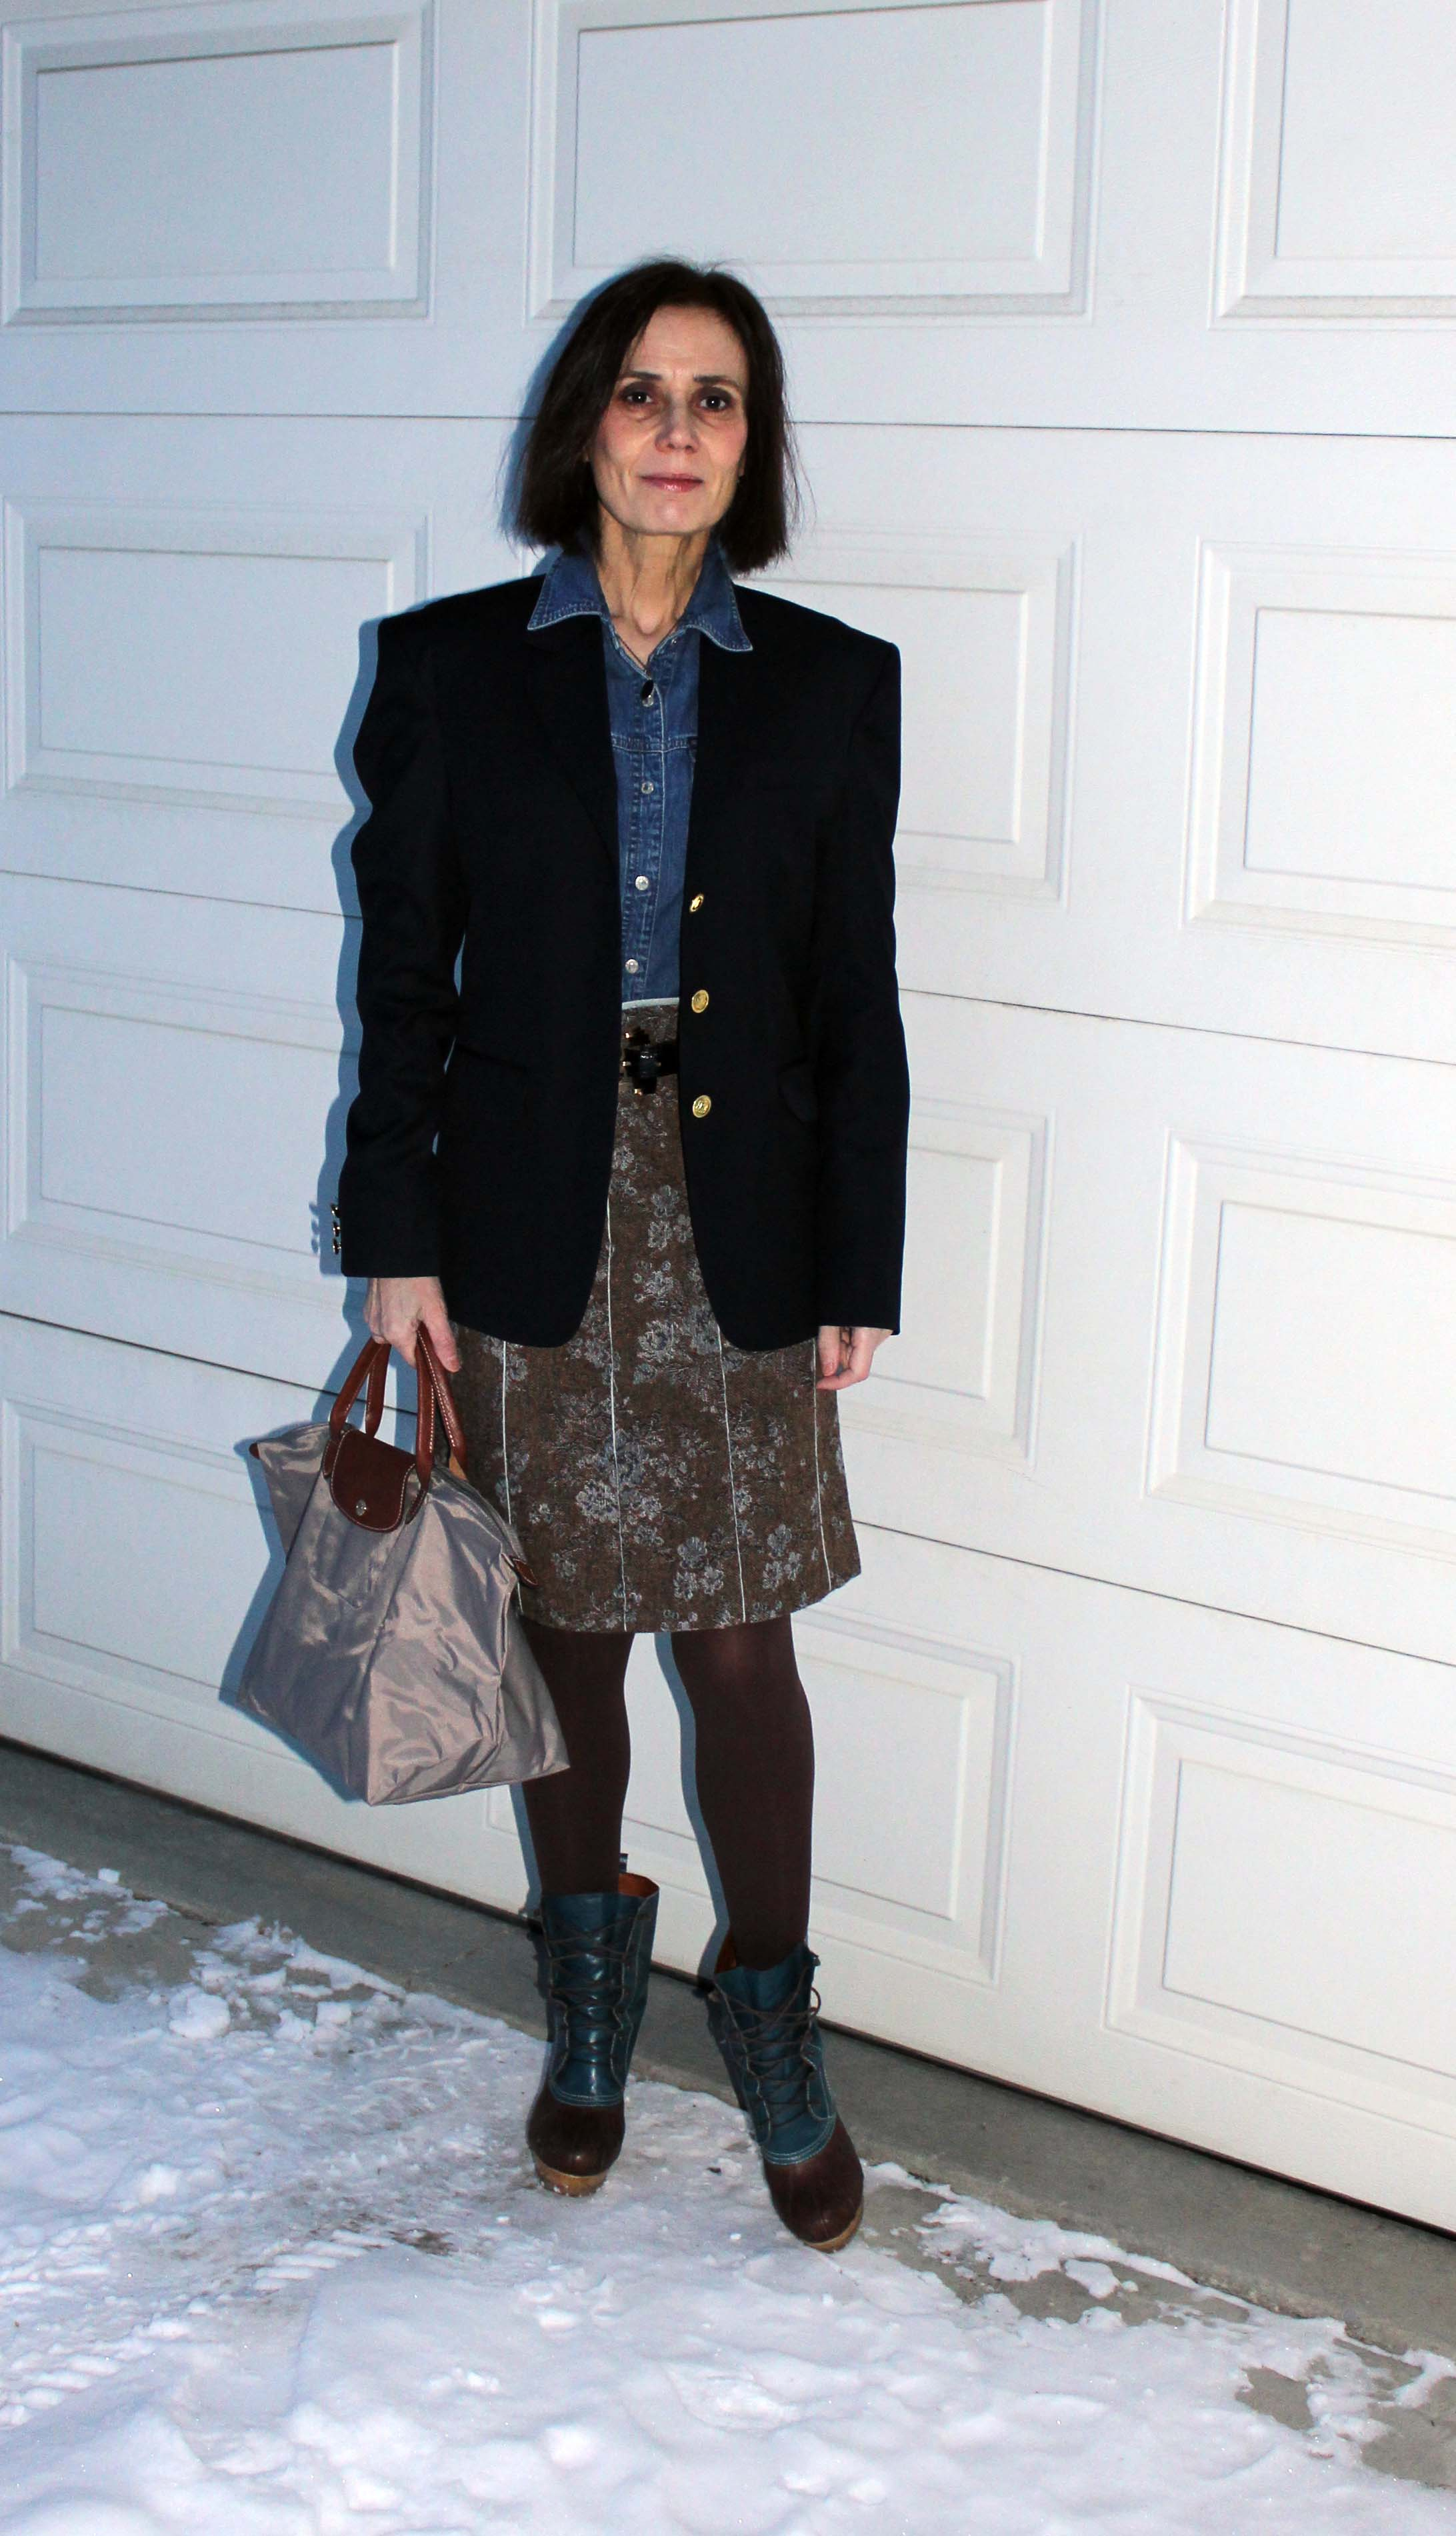 #over40fashion #fashionover50 How to style over-the-knee boots: example matched suit work outfit in the weekly Ageless Style series @ High Latitude Style @ http://www.highlatitudestyle.com